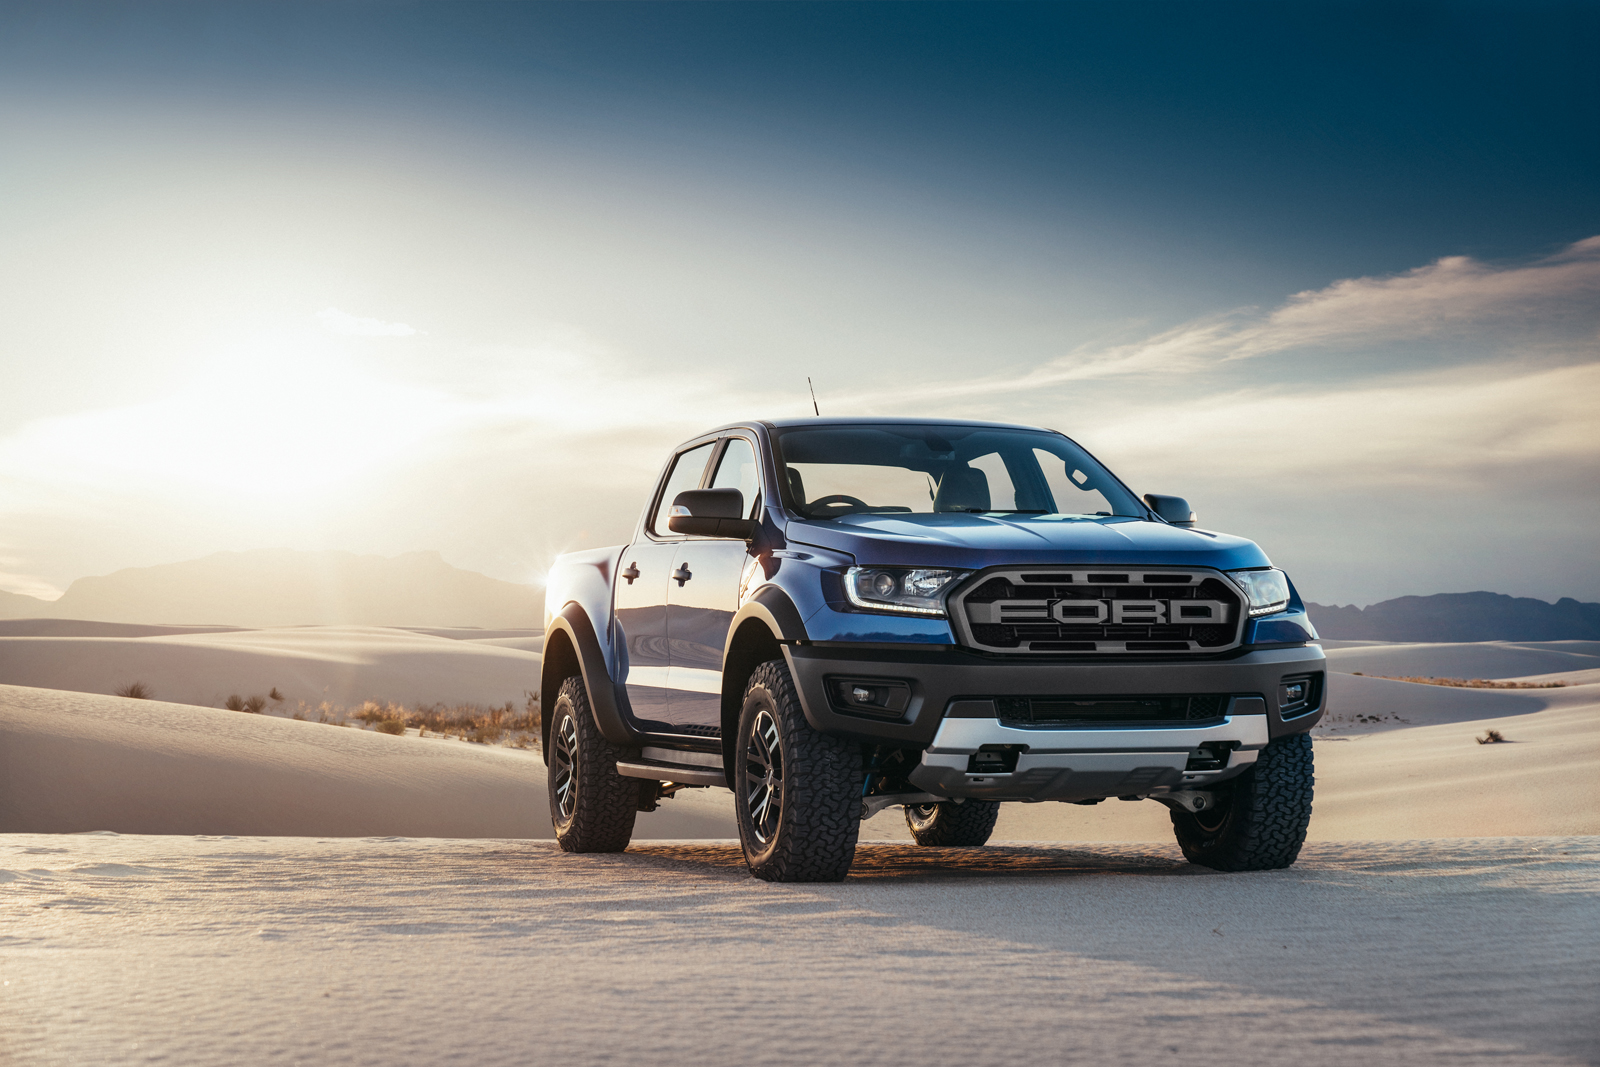 Used Car Loan >> 2019 Ford Ranger Raptor Arrives With 210 HP Diesel, Off-Road Ready Suspension » AutoGuide.com News